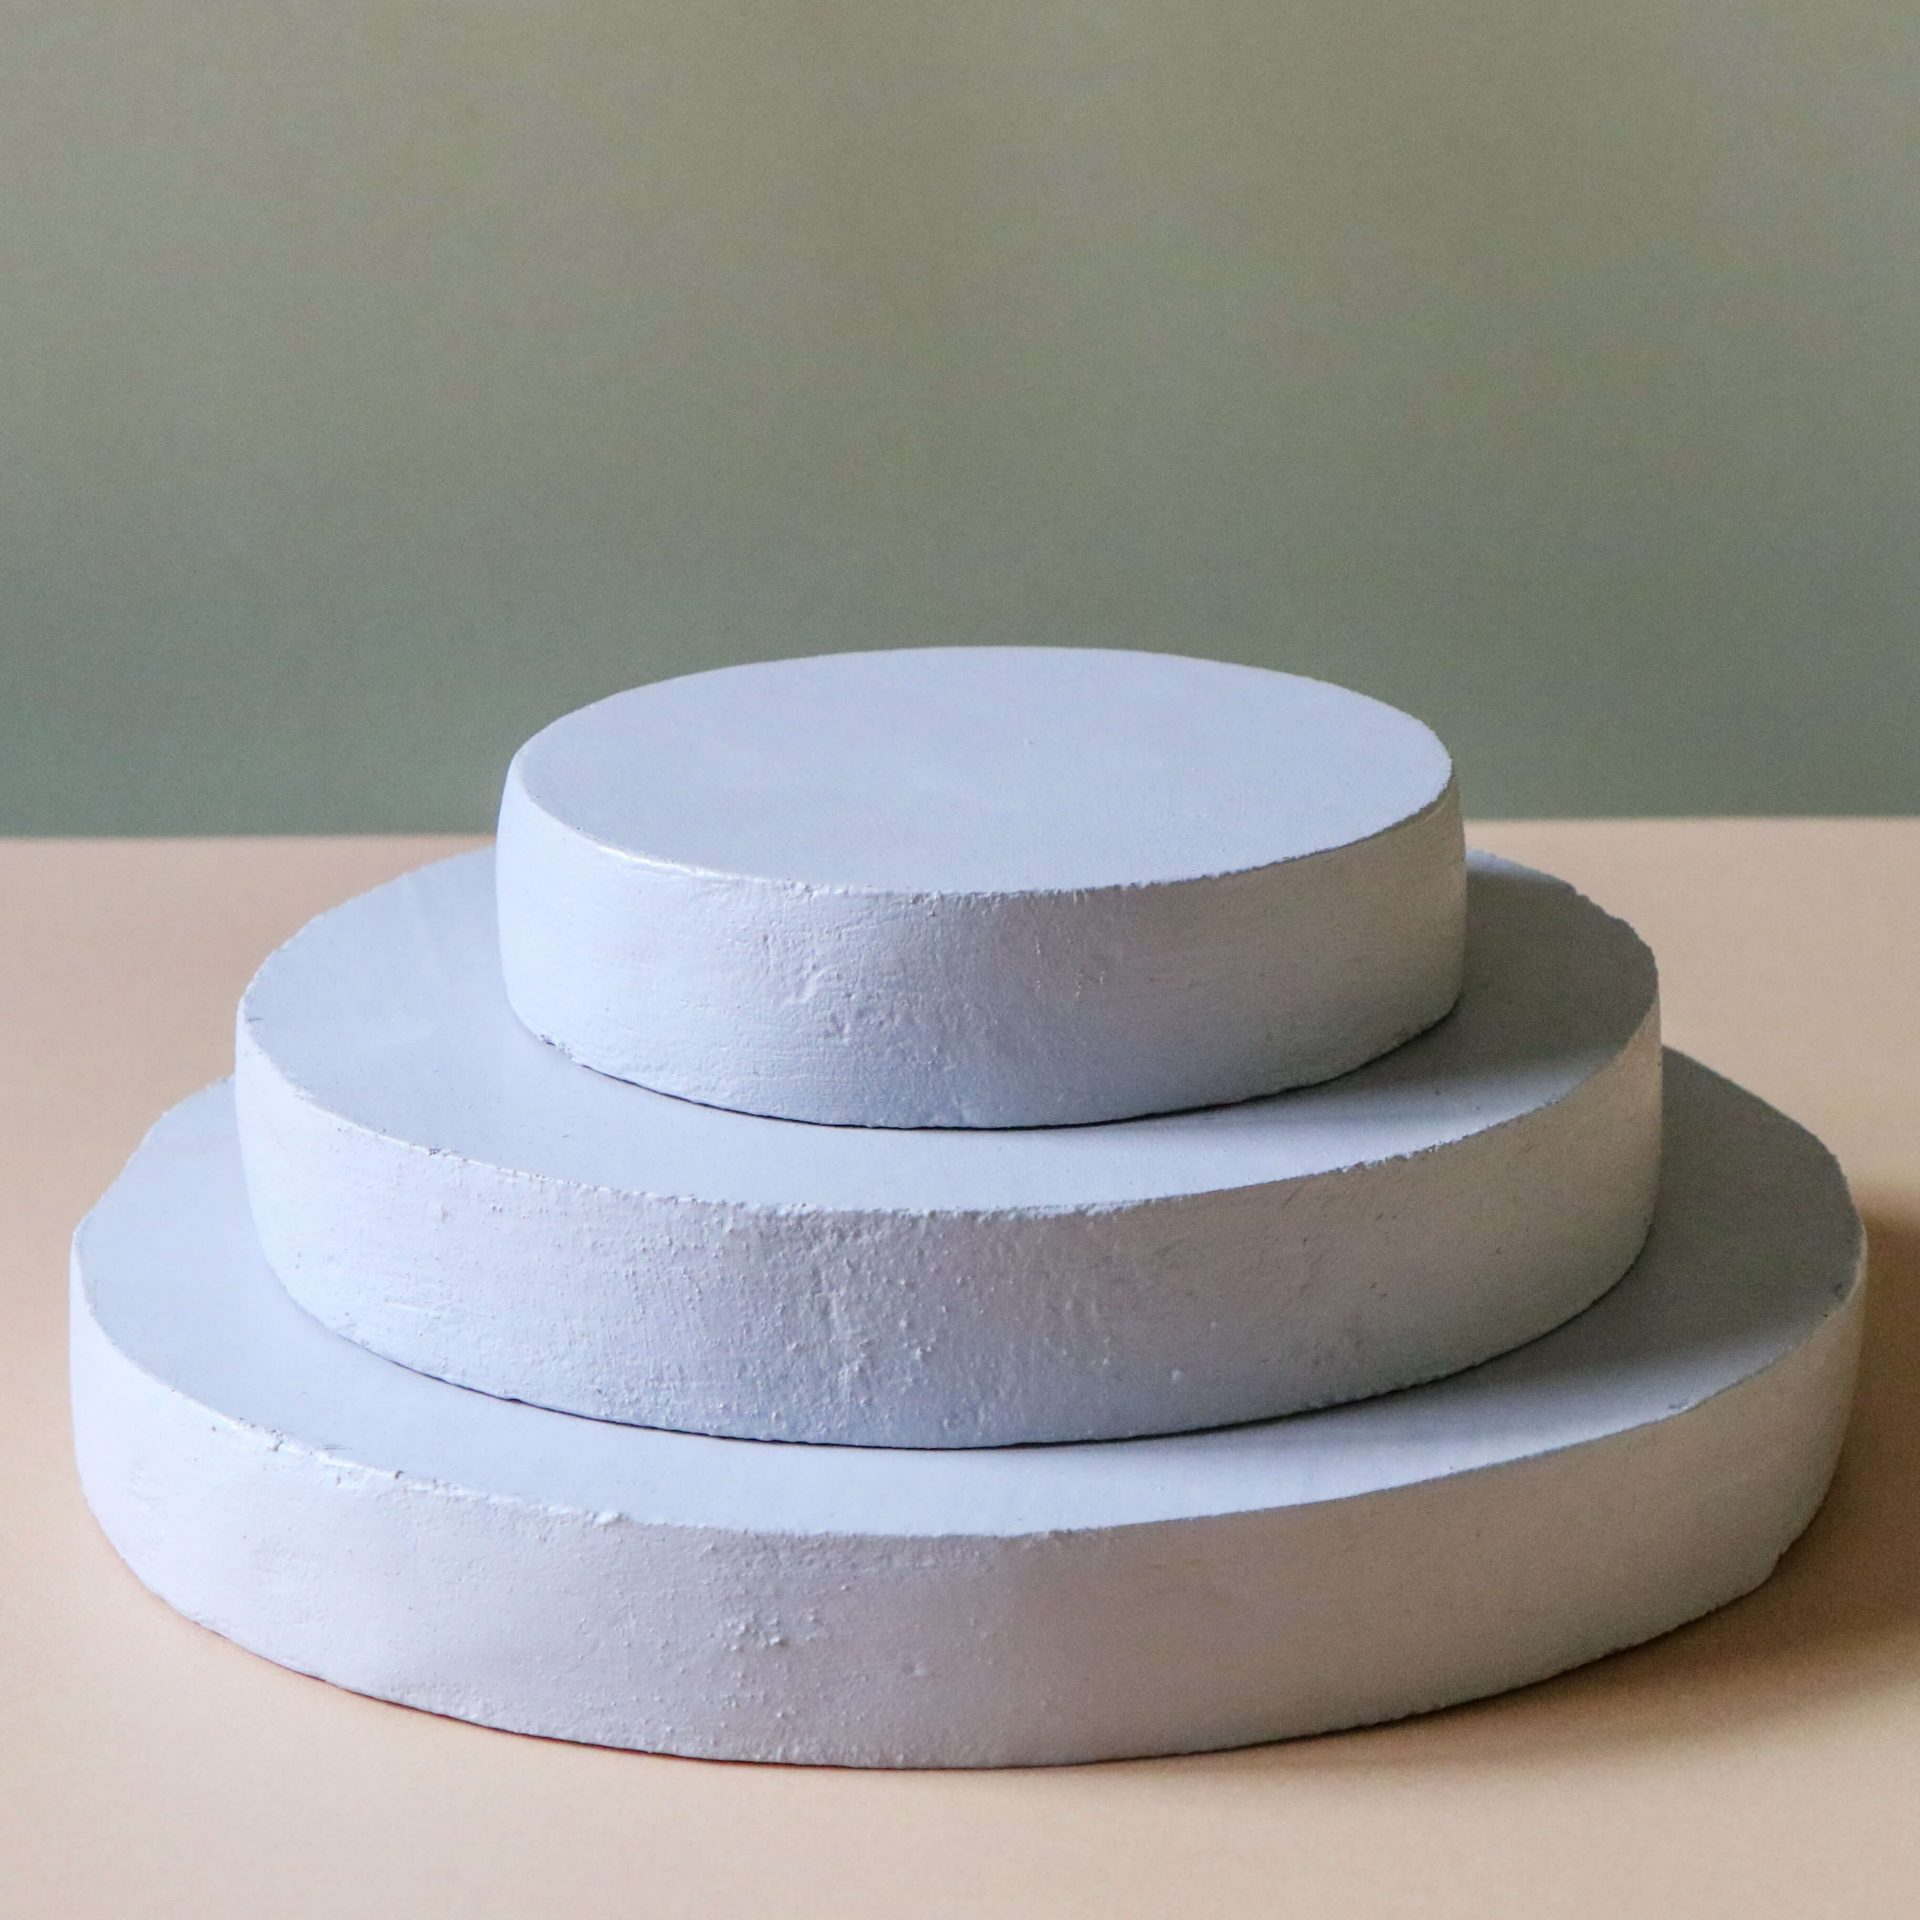 Circle Product Photography Risers - Pune Prop Store